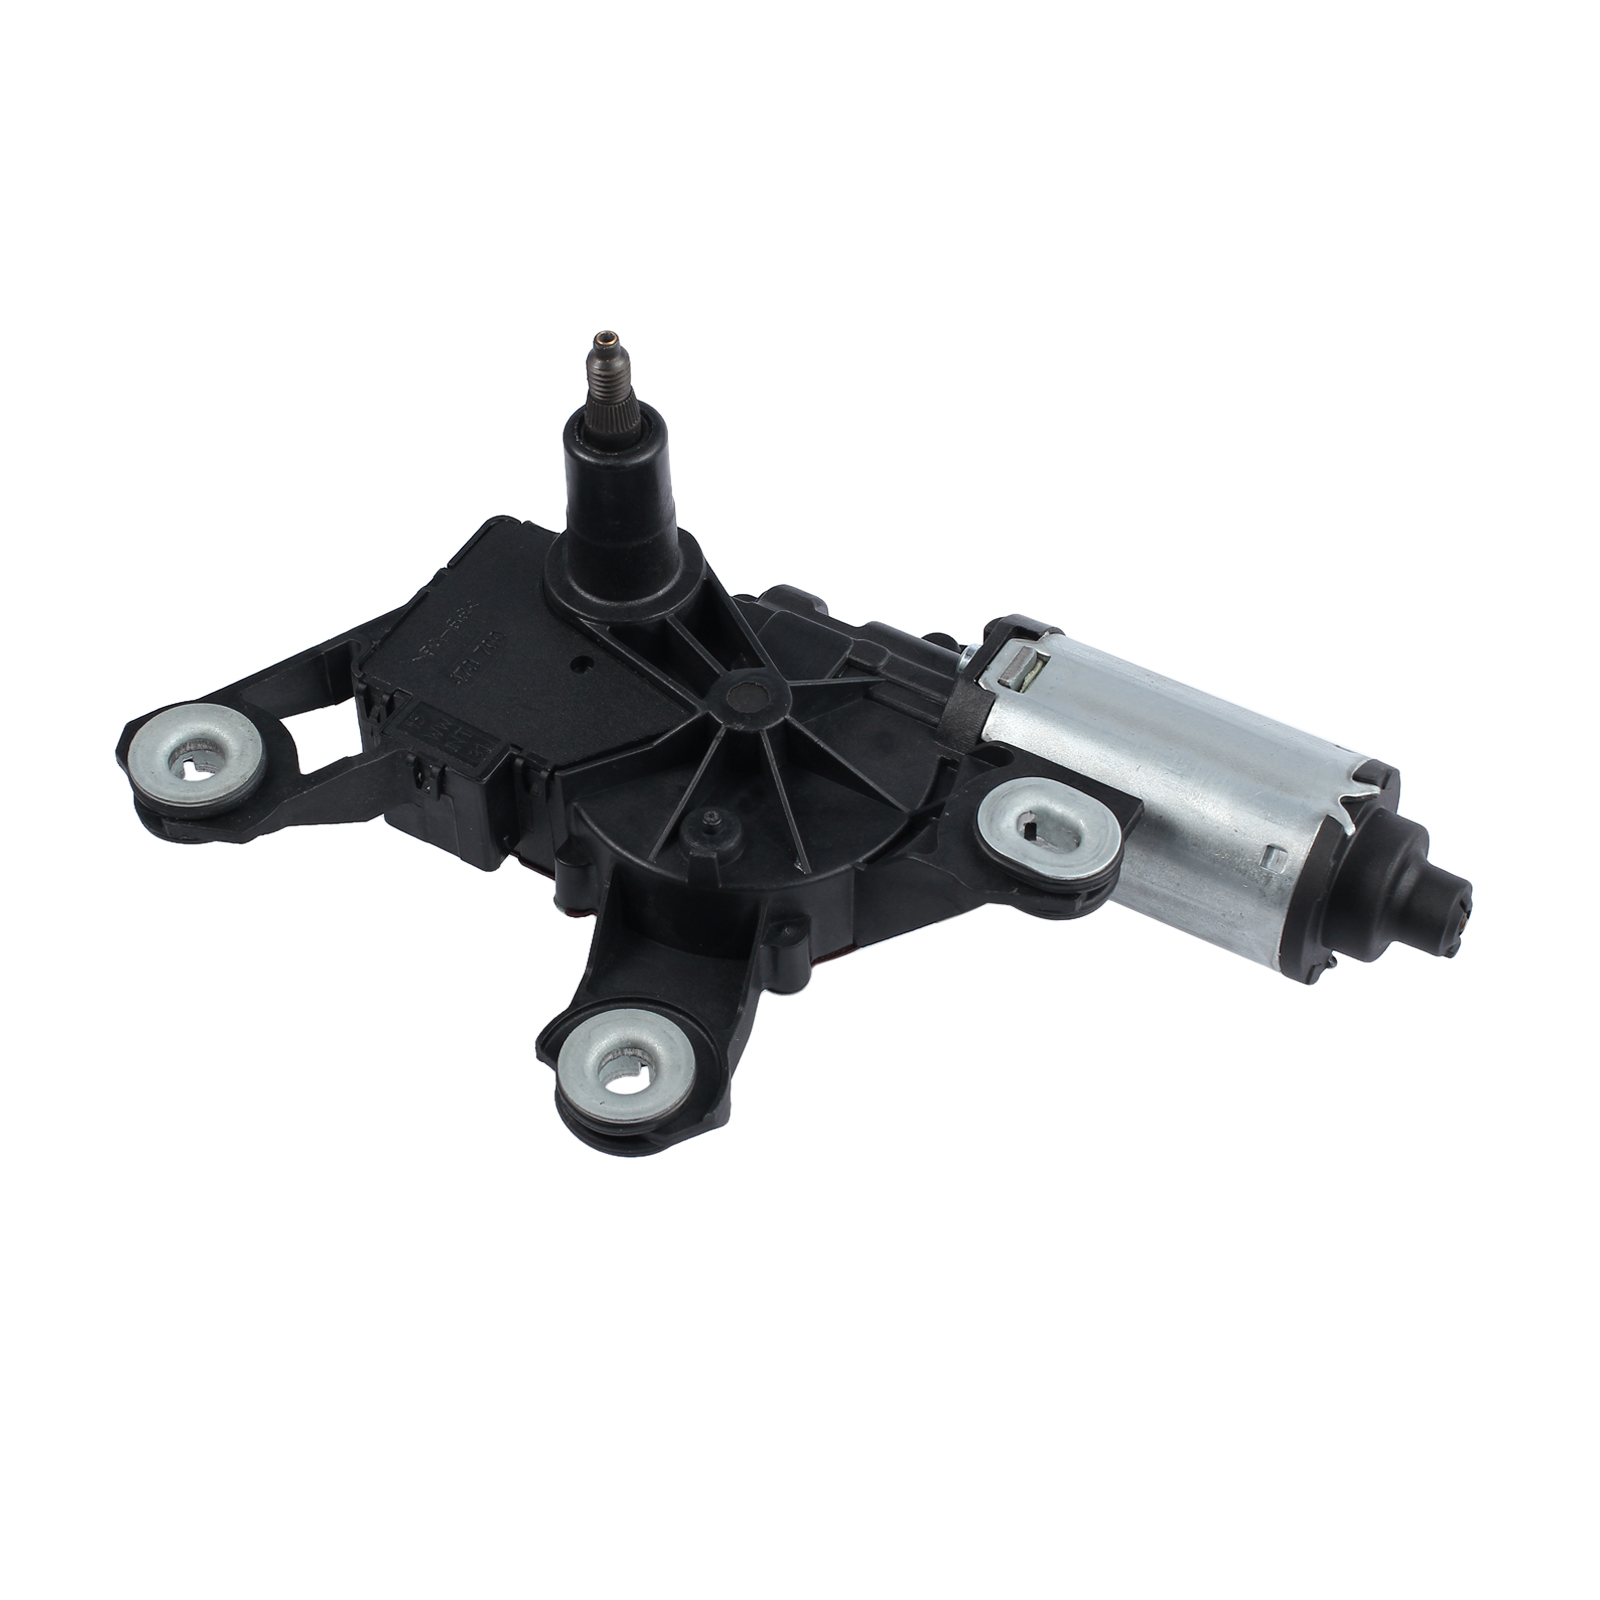 12V Rear Wiper Motor For Audi A4 A6 Allroad B8 4F5